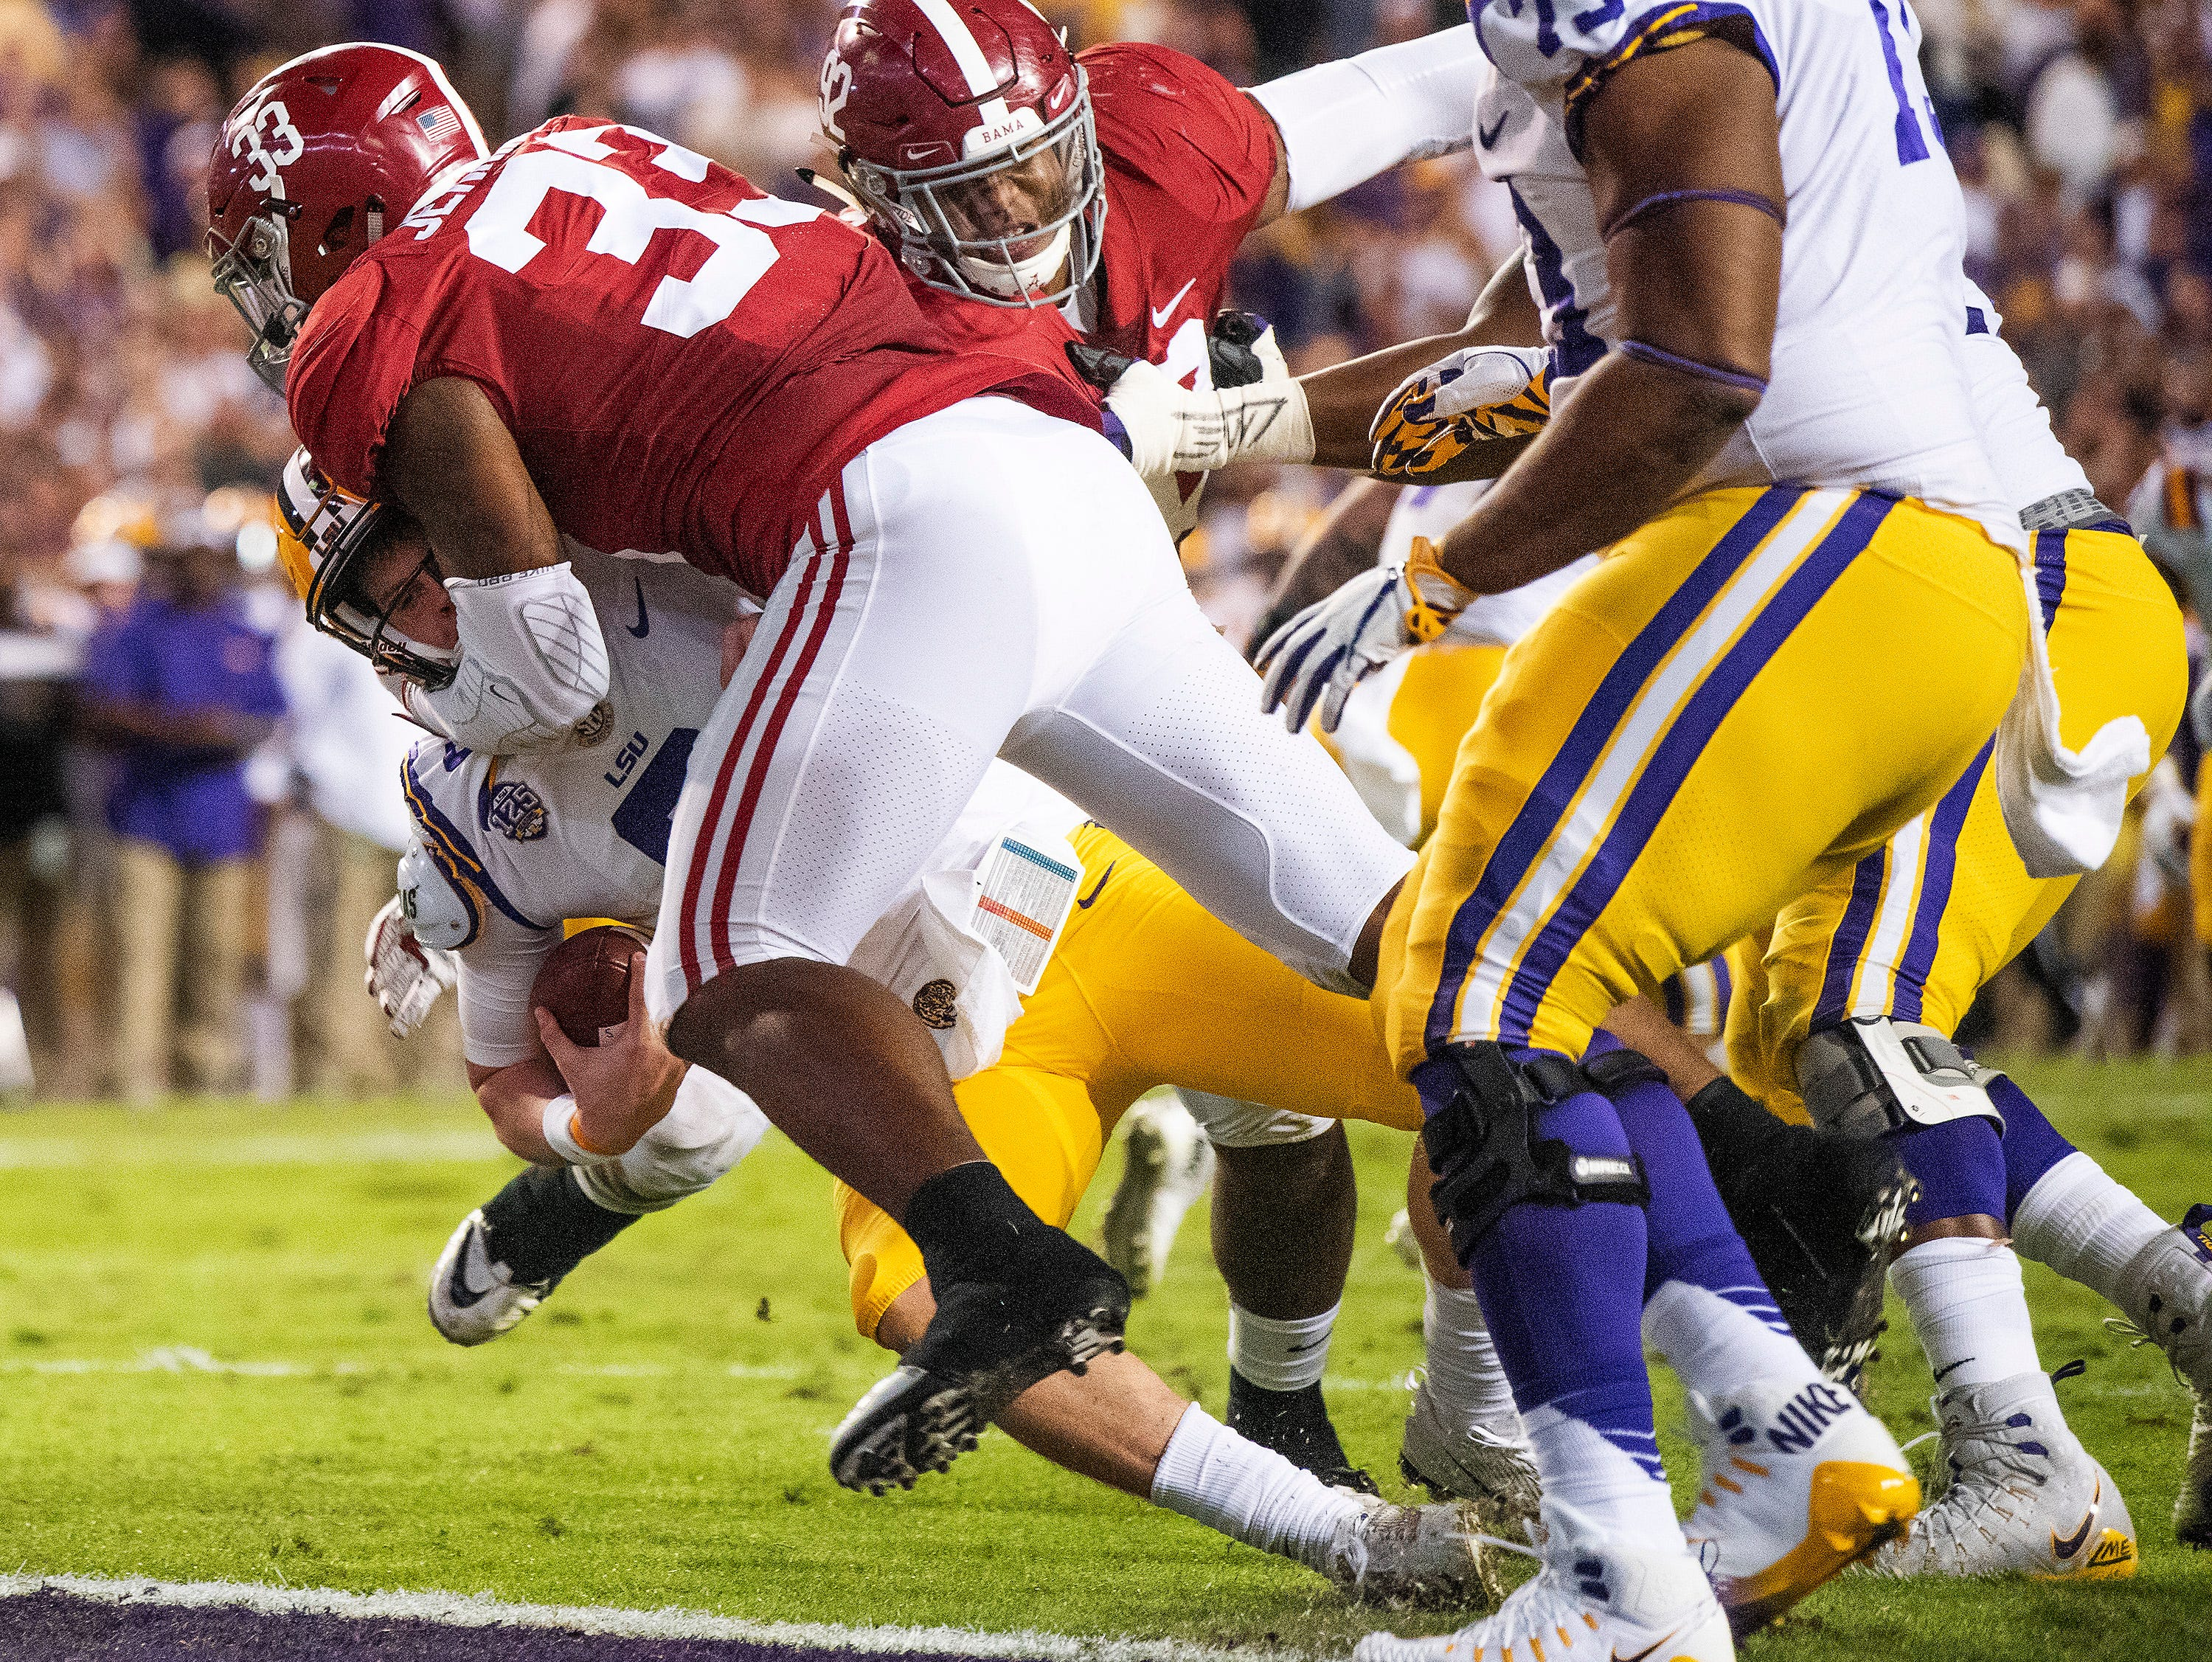 Alabama linebacker Anfernee Jennings (33) sacks Louisiana State University quarterback Joe Burrow (9) near the goal line in first half action at Tiger Stadium in Baton Rouge, La., on Saturday November 3, 2018.